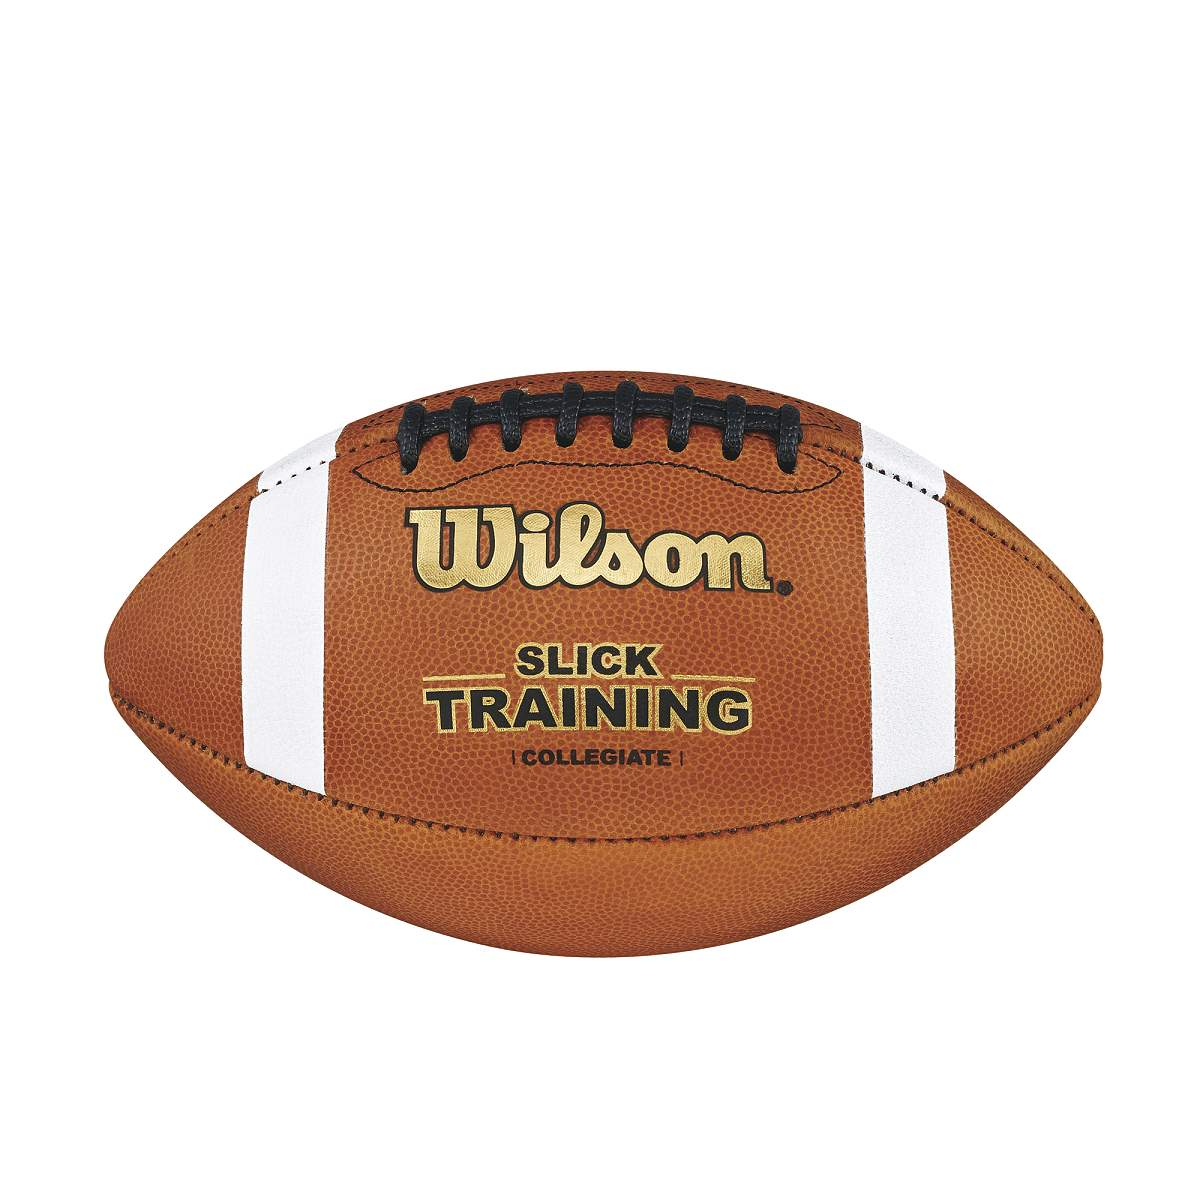 Slick Training Football